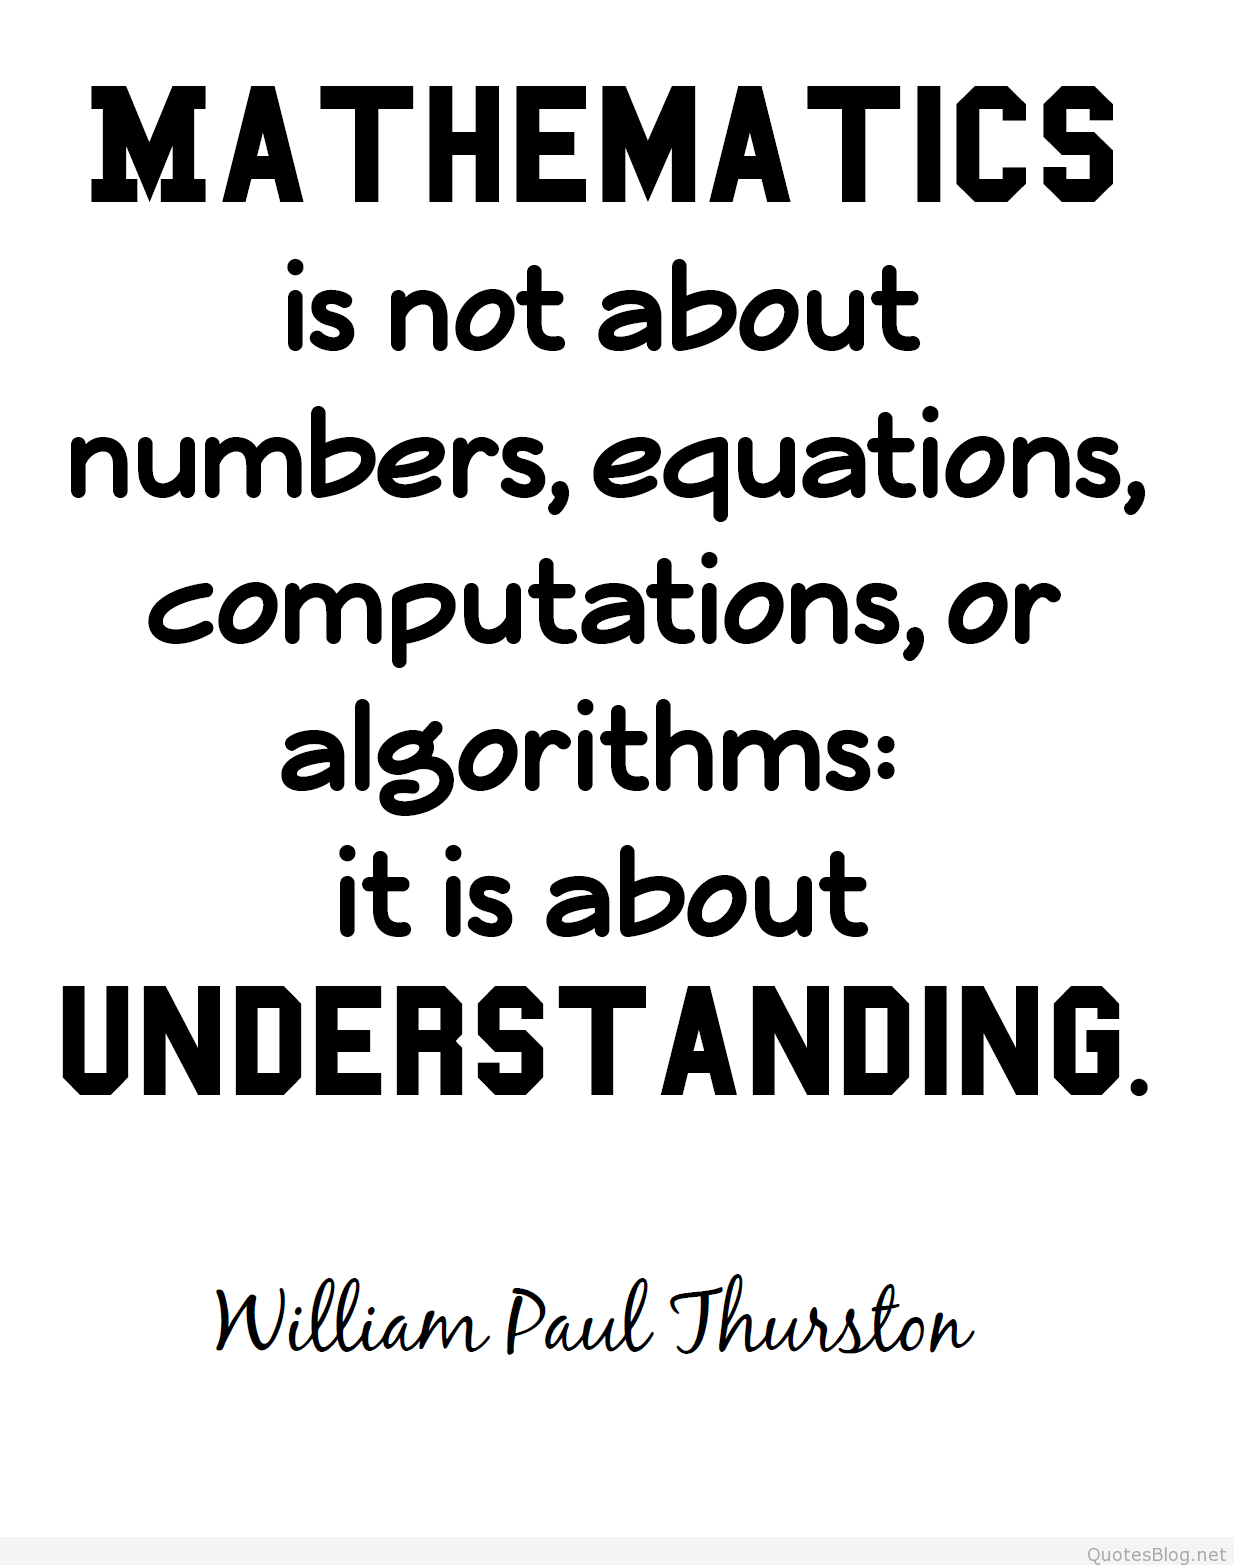 quotes about math Inspirational mathematics quotes math quotes (40 wallpapers) - quotefancy photo, inspirational mathematics quotes math quotes (40 wallpapers) - quotefancy image, inspirational mathematics quotes math quotes (40 wallpapers) - quotefancy gallery.